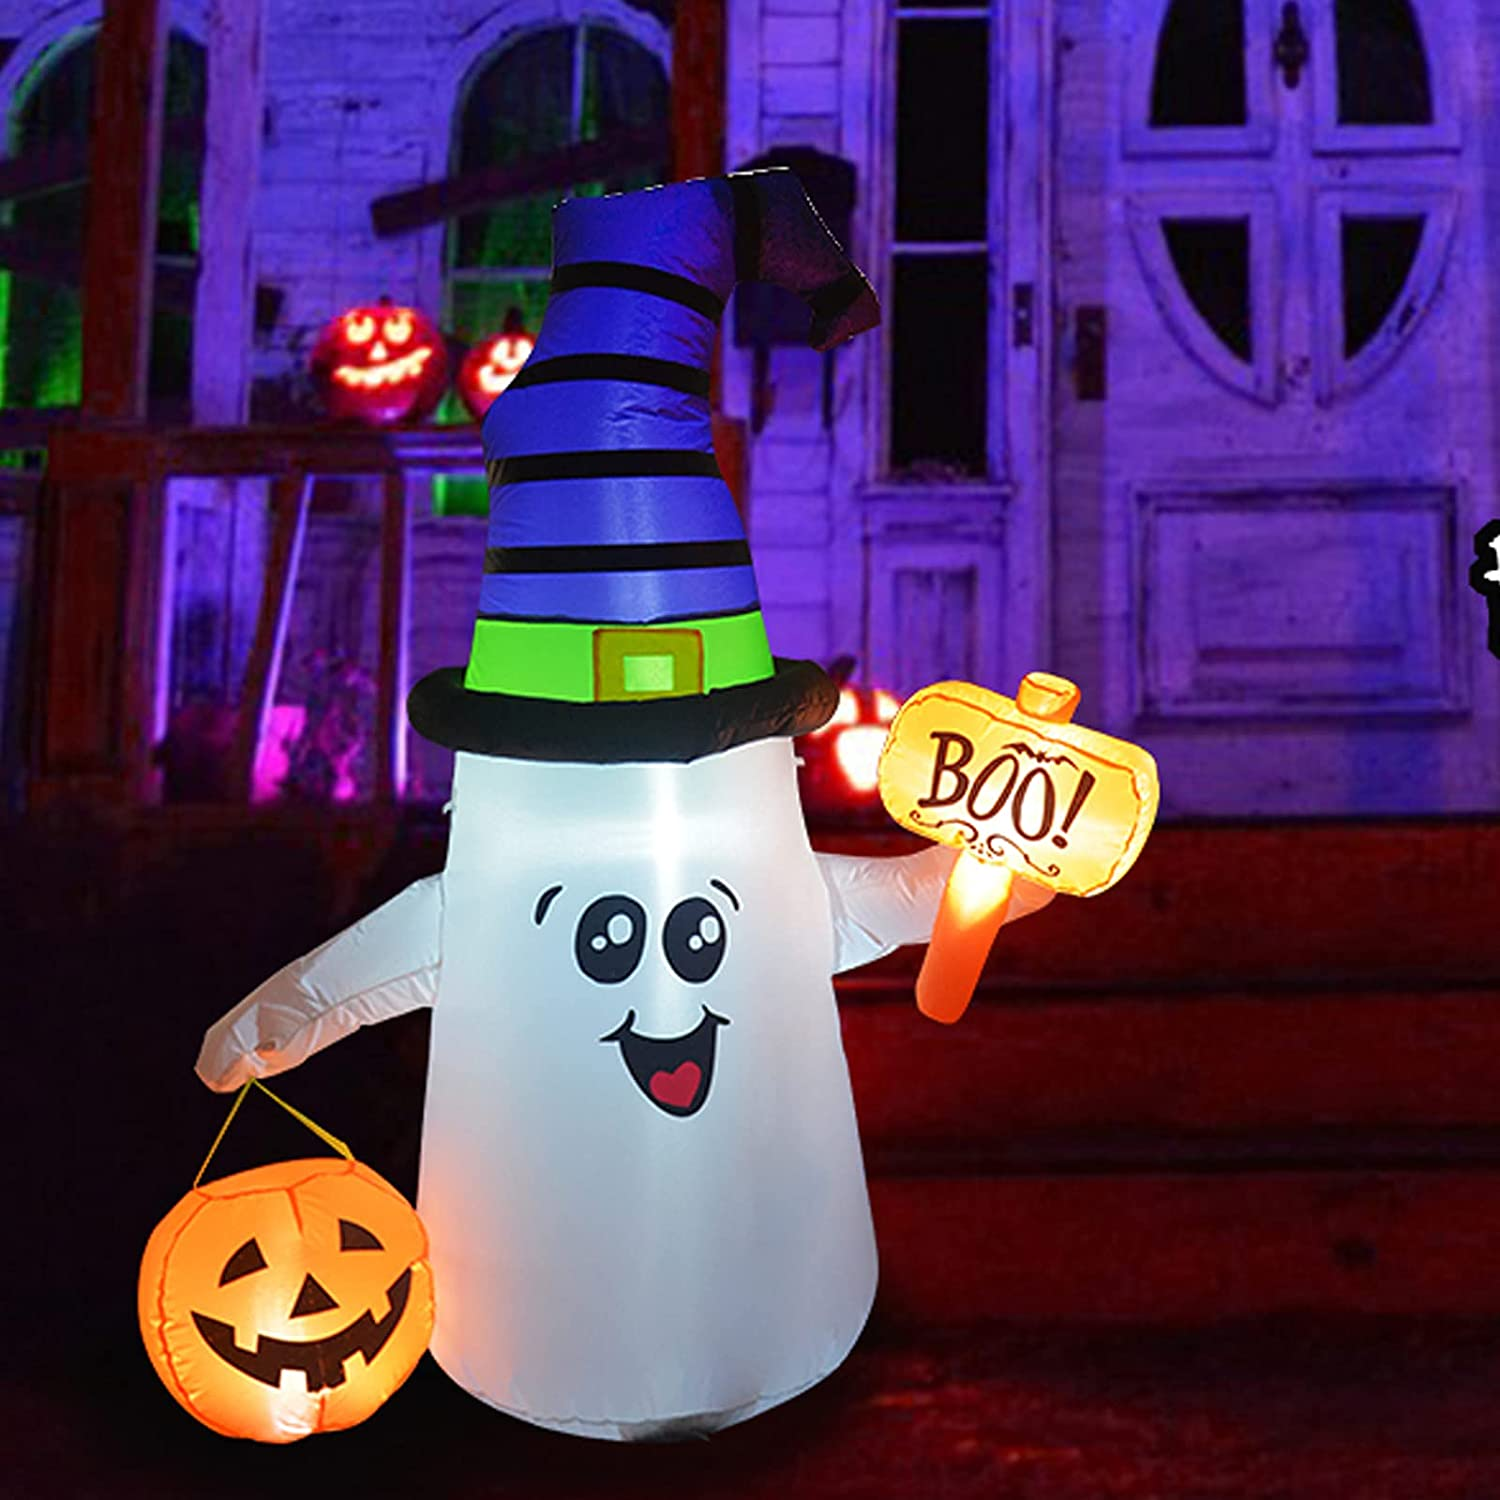 GOOSH 5 FT Halloween Inflatable Outdoor Cute Ghost with Dunces Cap, Blow Up Yard Decoration Clearance with LED Lights Built-in for Holiday/Party/Yard/Garden